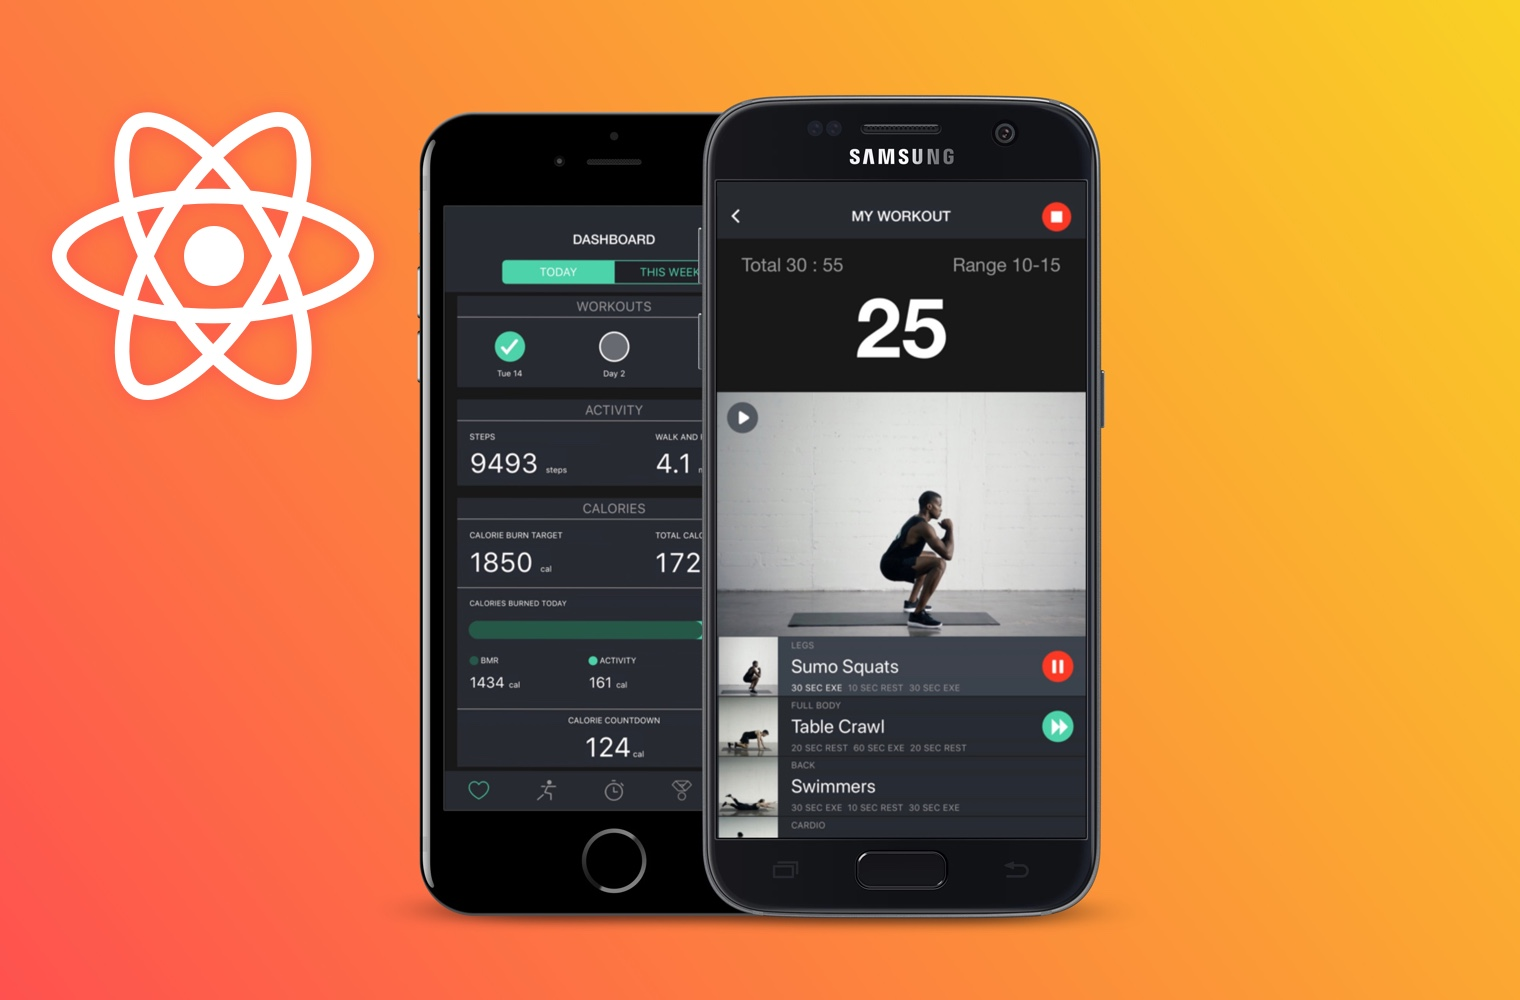 React Native is our platform of choice for cross-platform mobile app development. As demonstrated by FitVo, React Native give outstanding performance with a single code base.